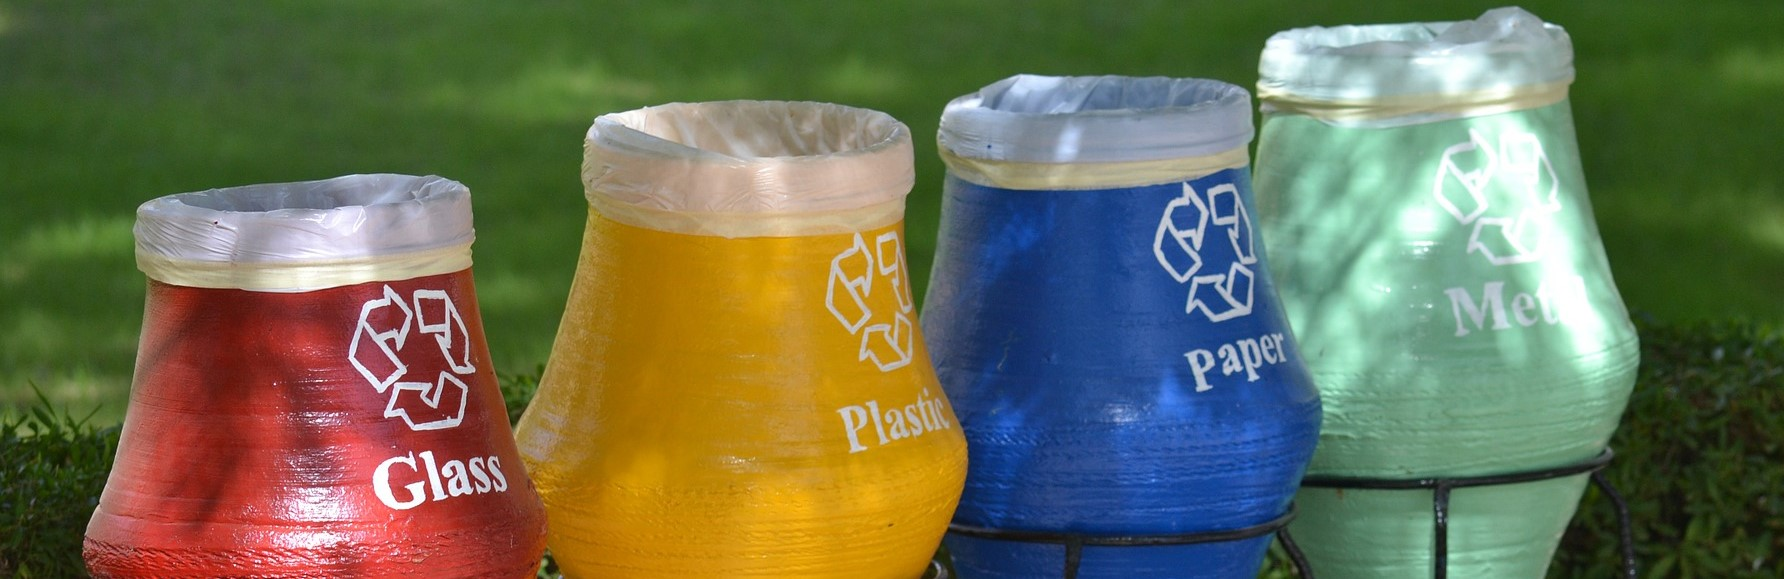 Recycle Bins in Different Colors | Breast Cancer Car Donations